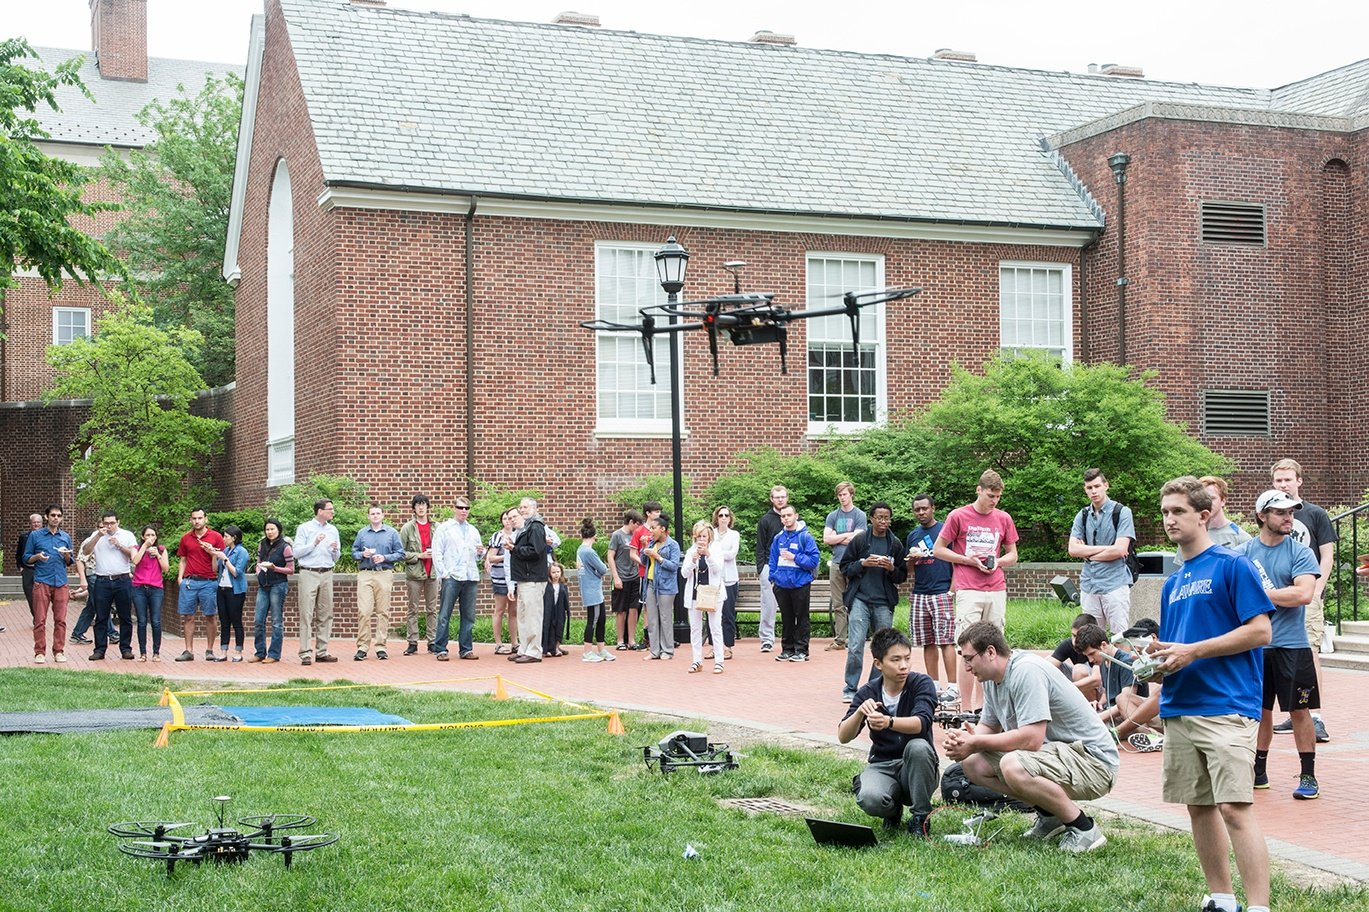 5 Threats that drones pose on a University Campus